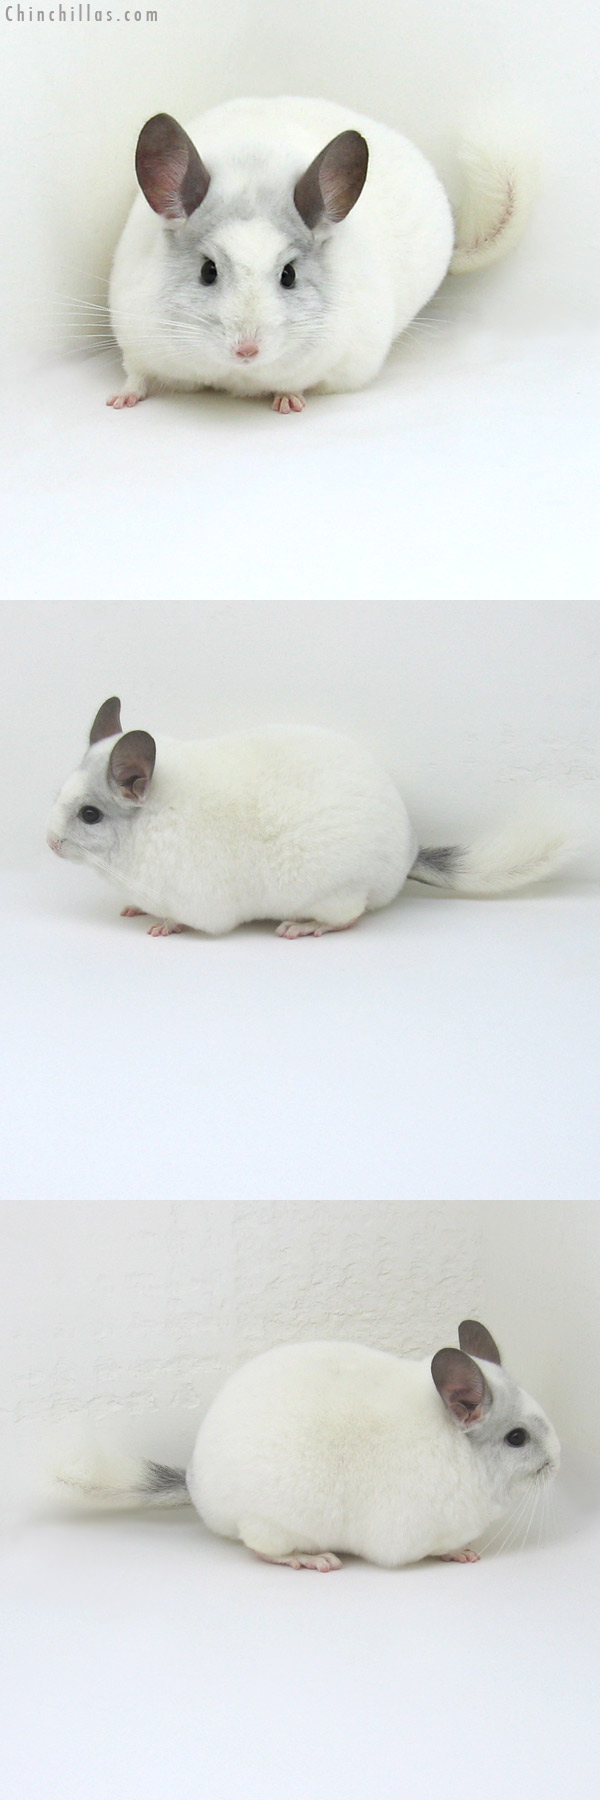 11065 Large Premium Production Quality White Mosaic K887 Daughter Chinchilla